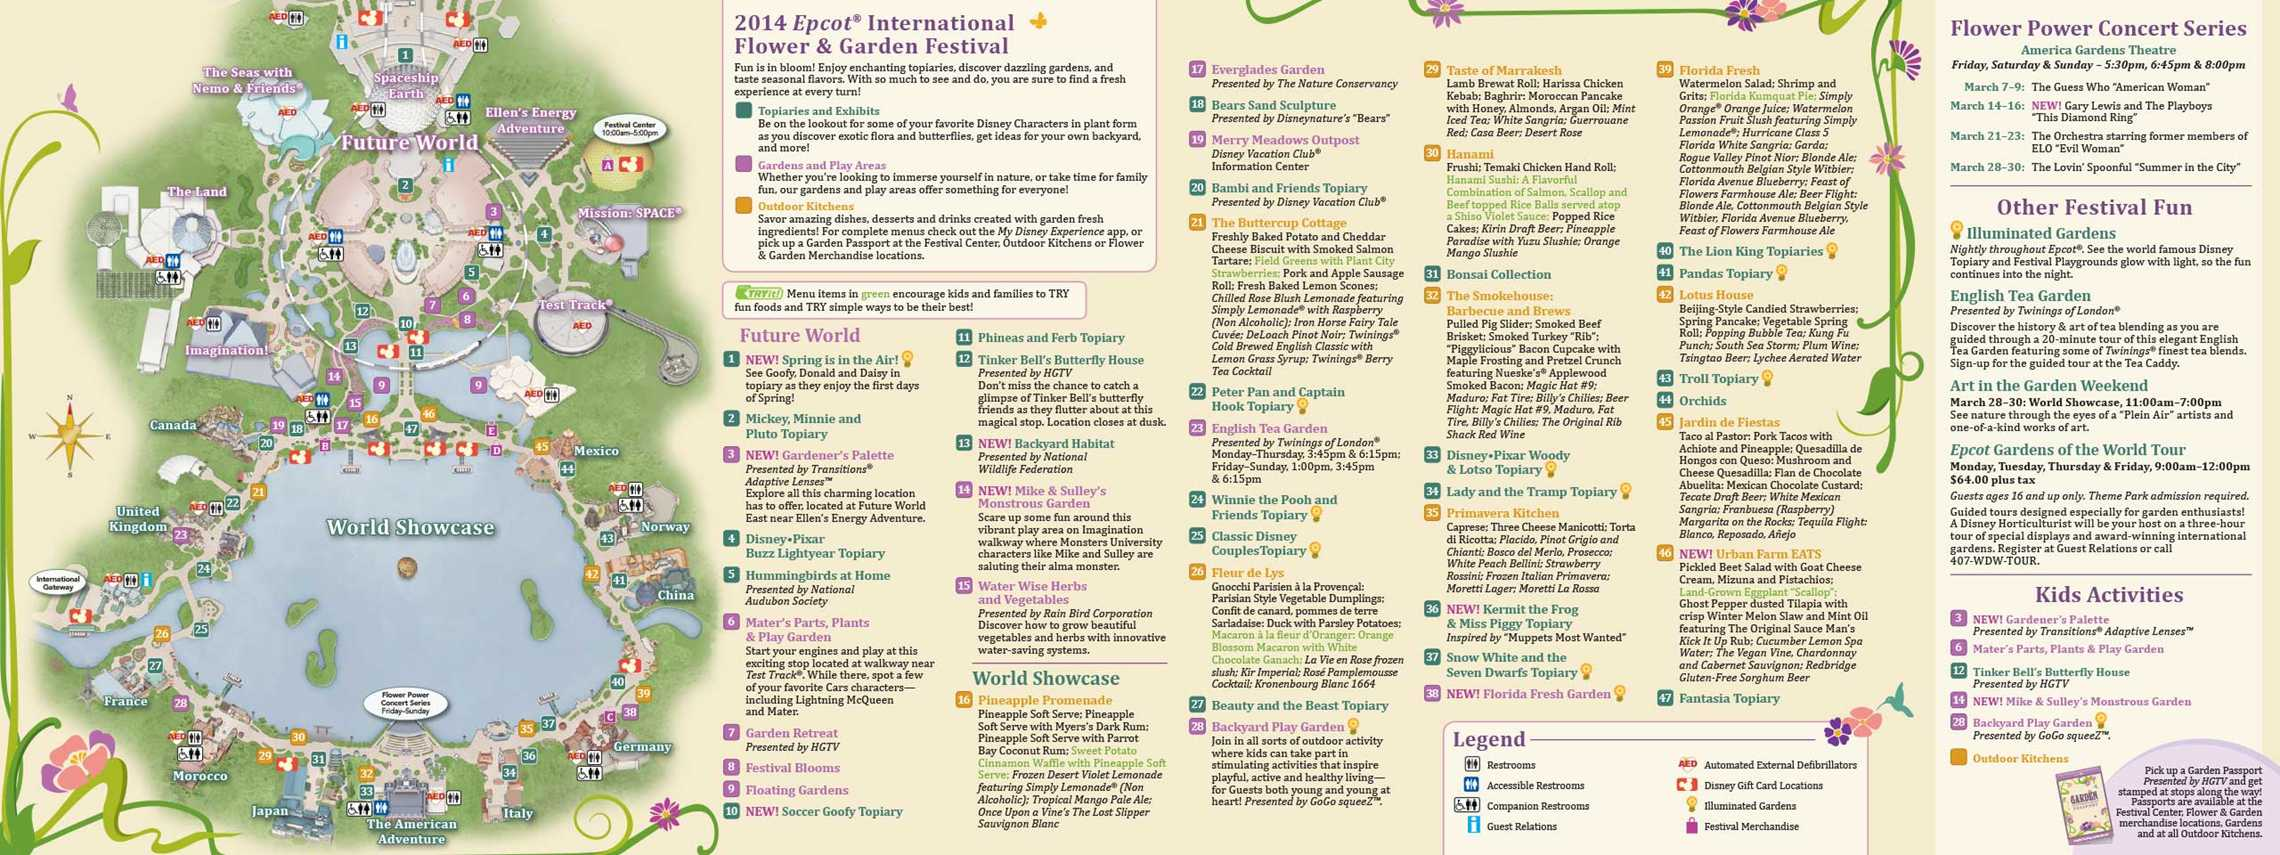 2014 Epcot Flower And Garden Festival Guide Map Photo 1 Of 2